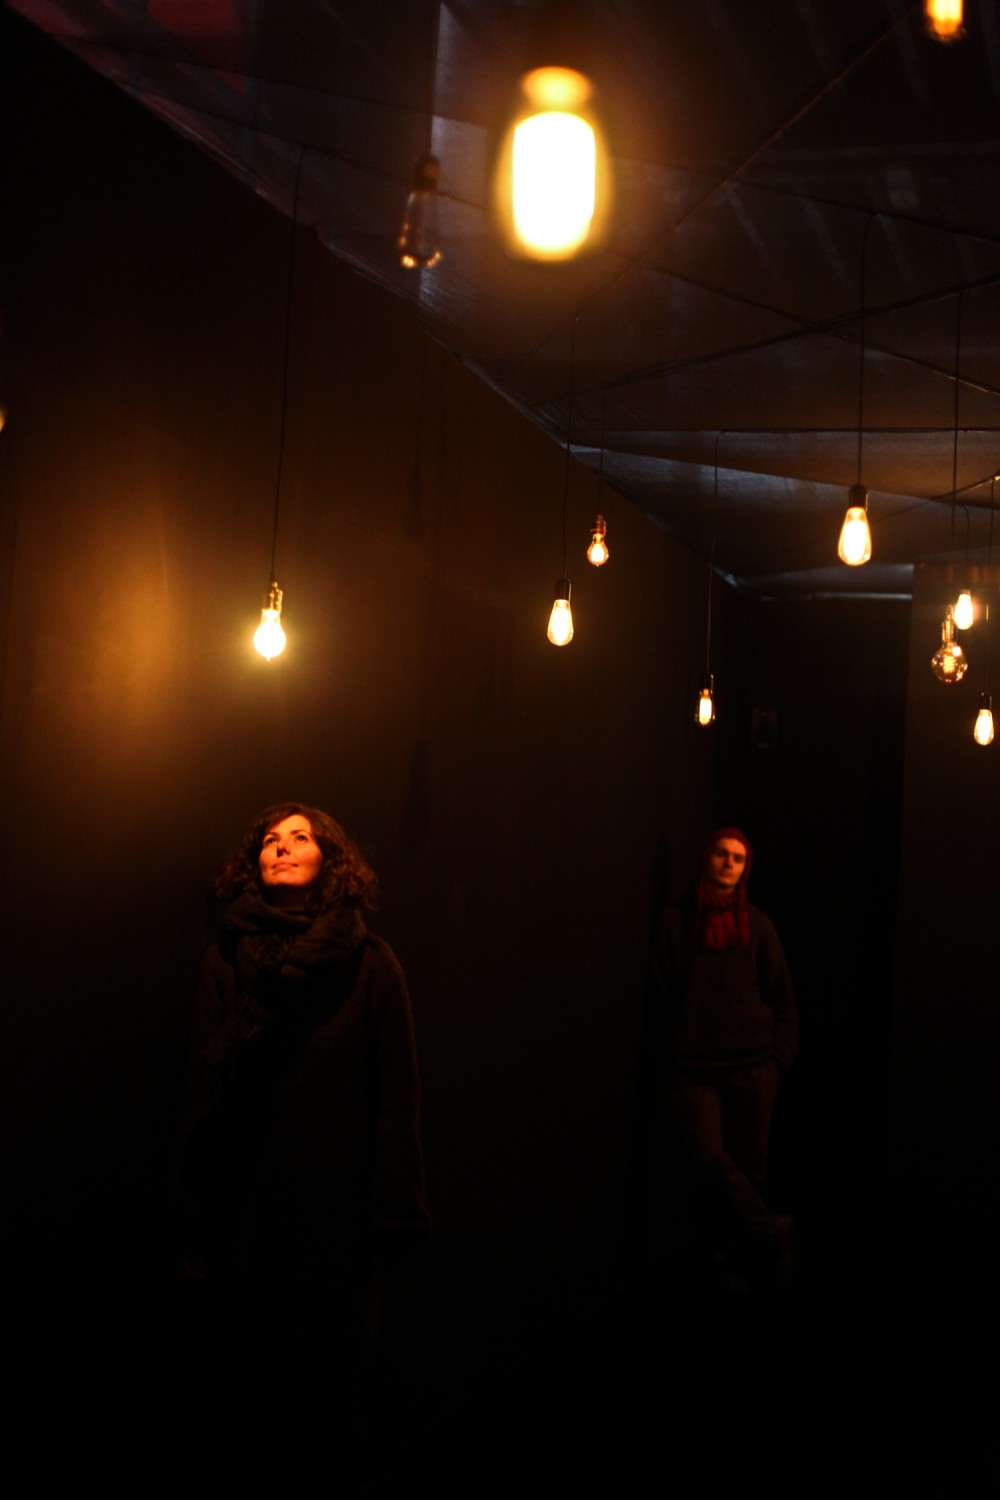 A woman stands in a black room with different shaped light bulbs hanging from the ceiling.